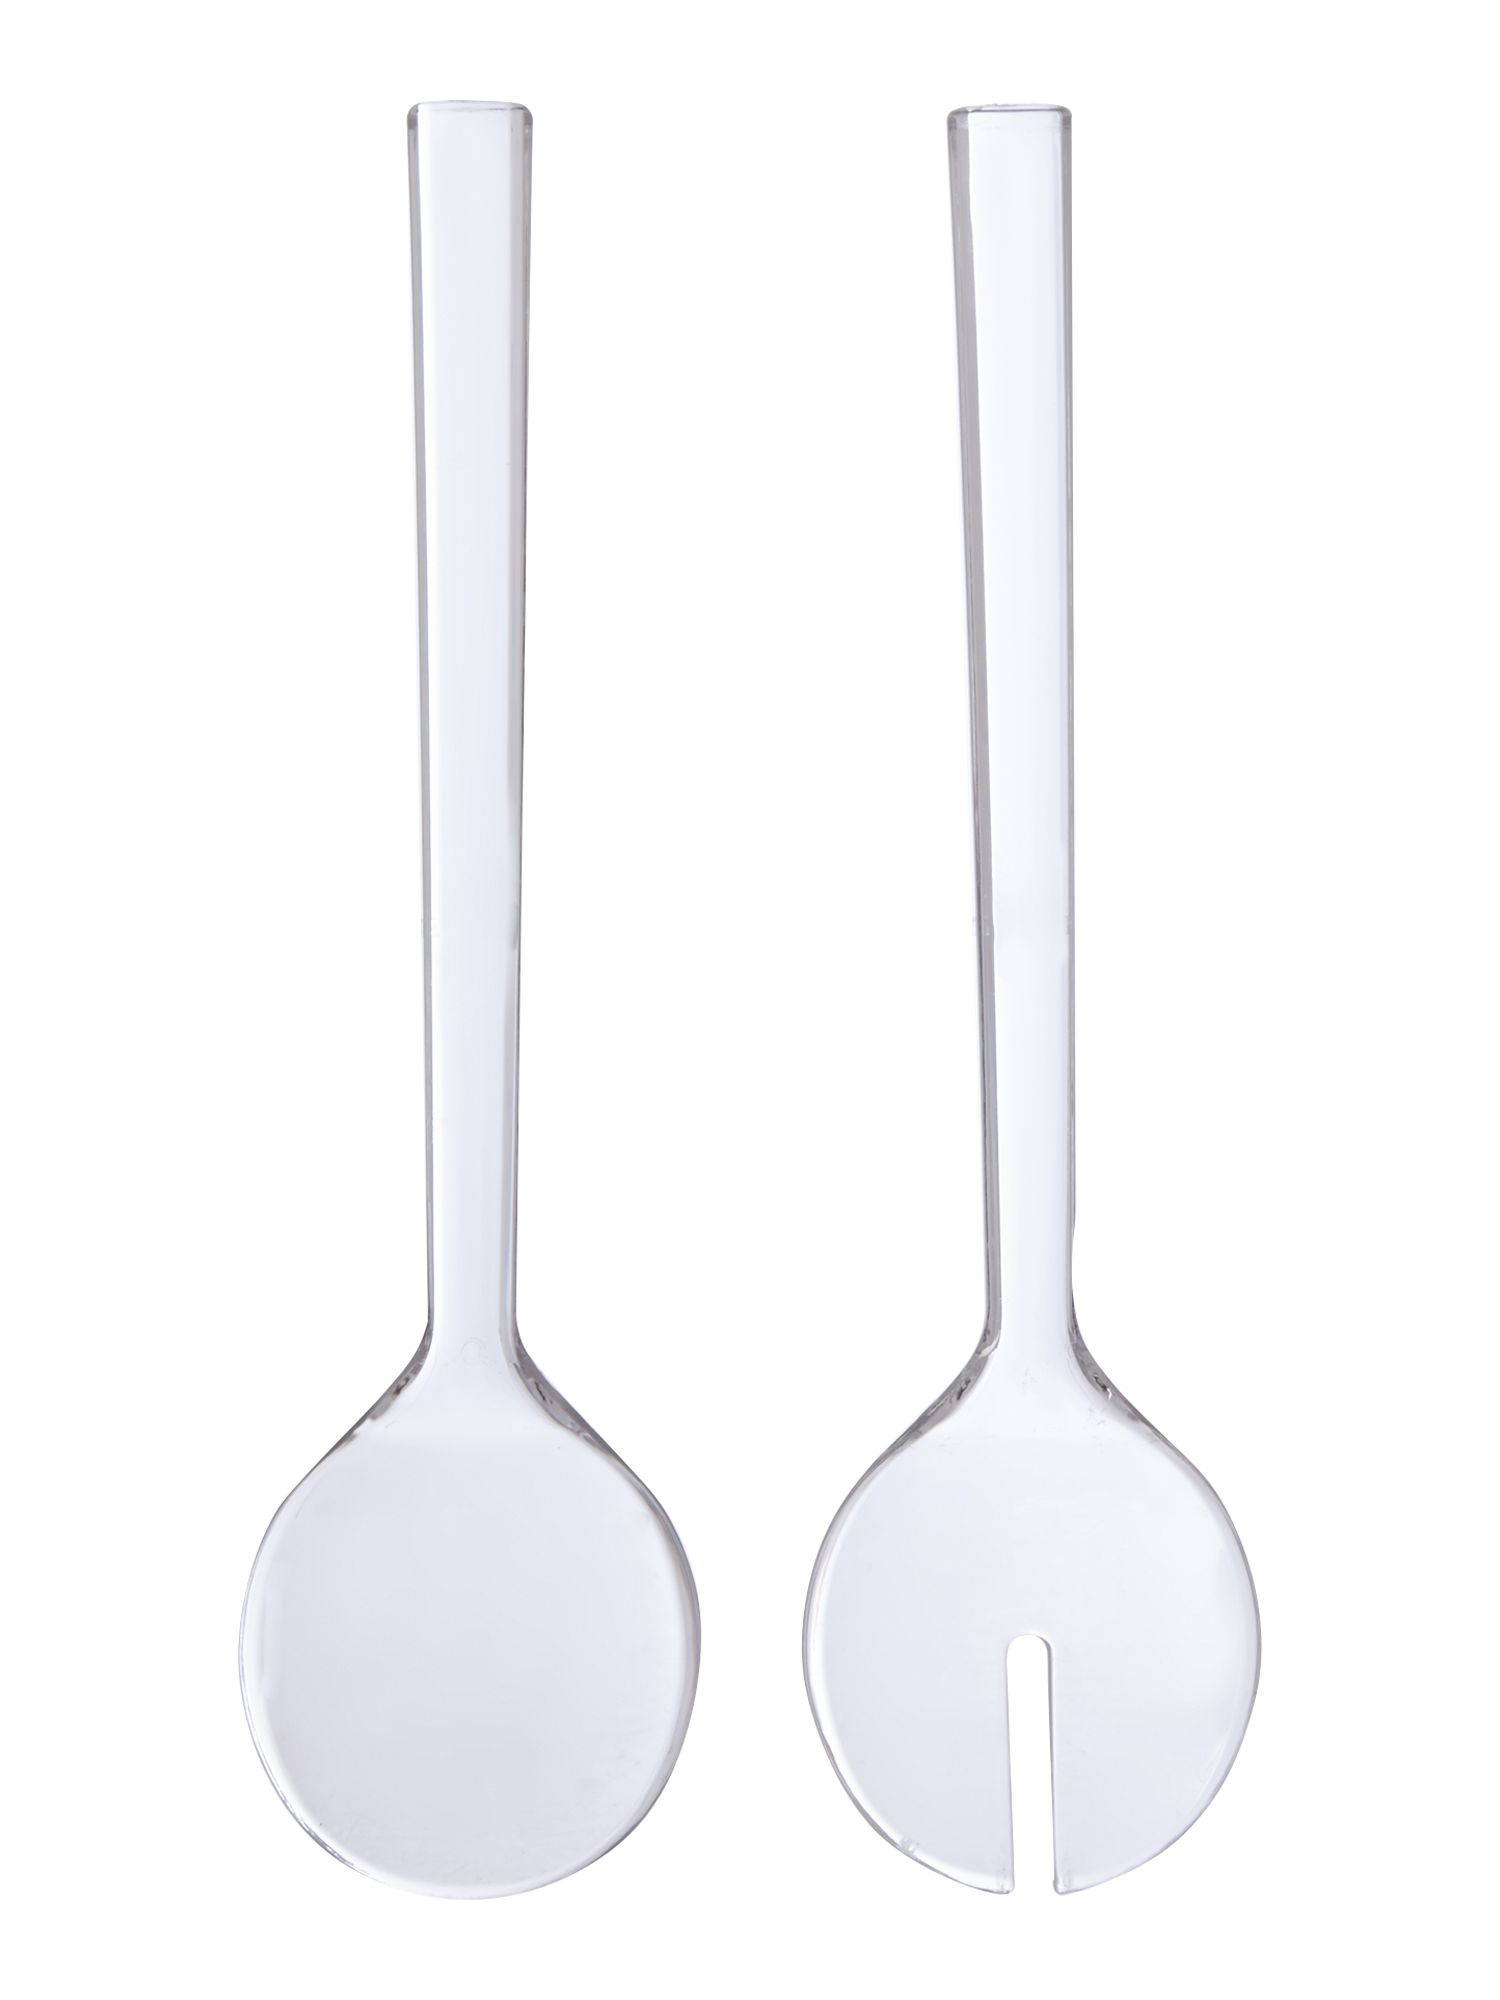 Honeycomb acrylic salad servers